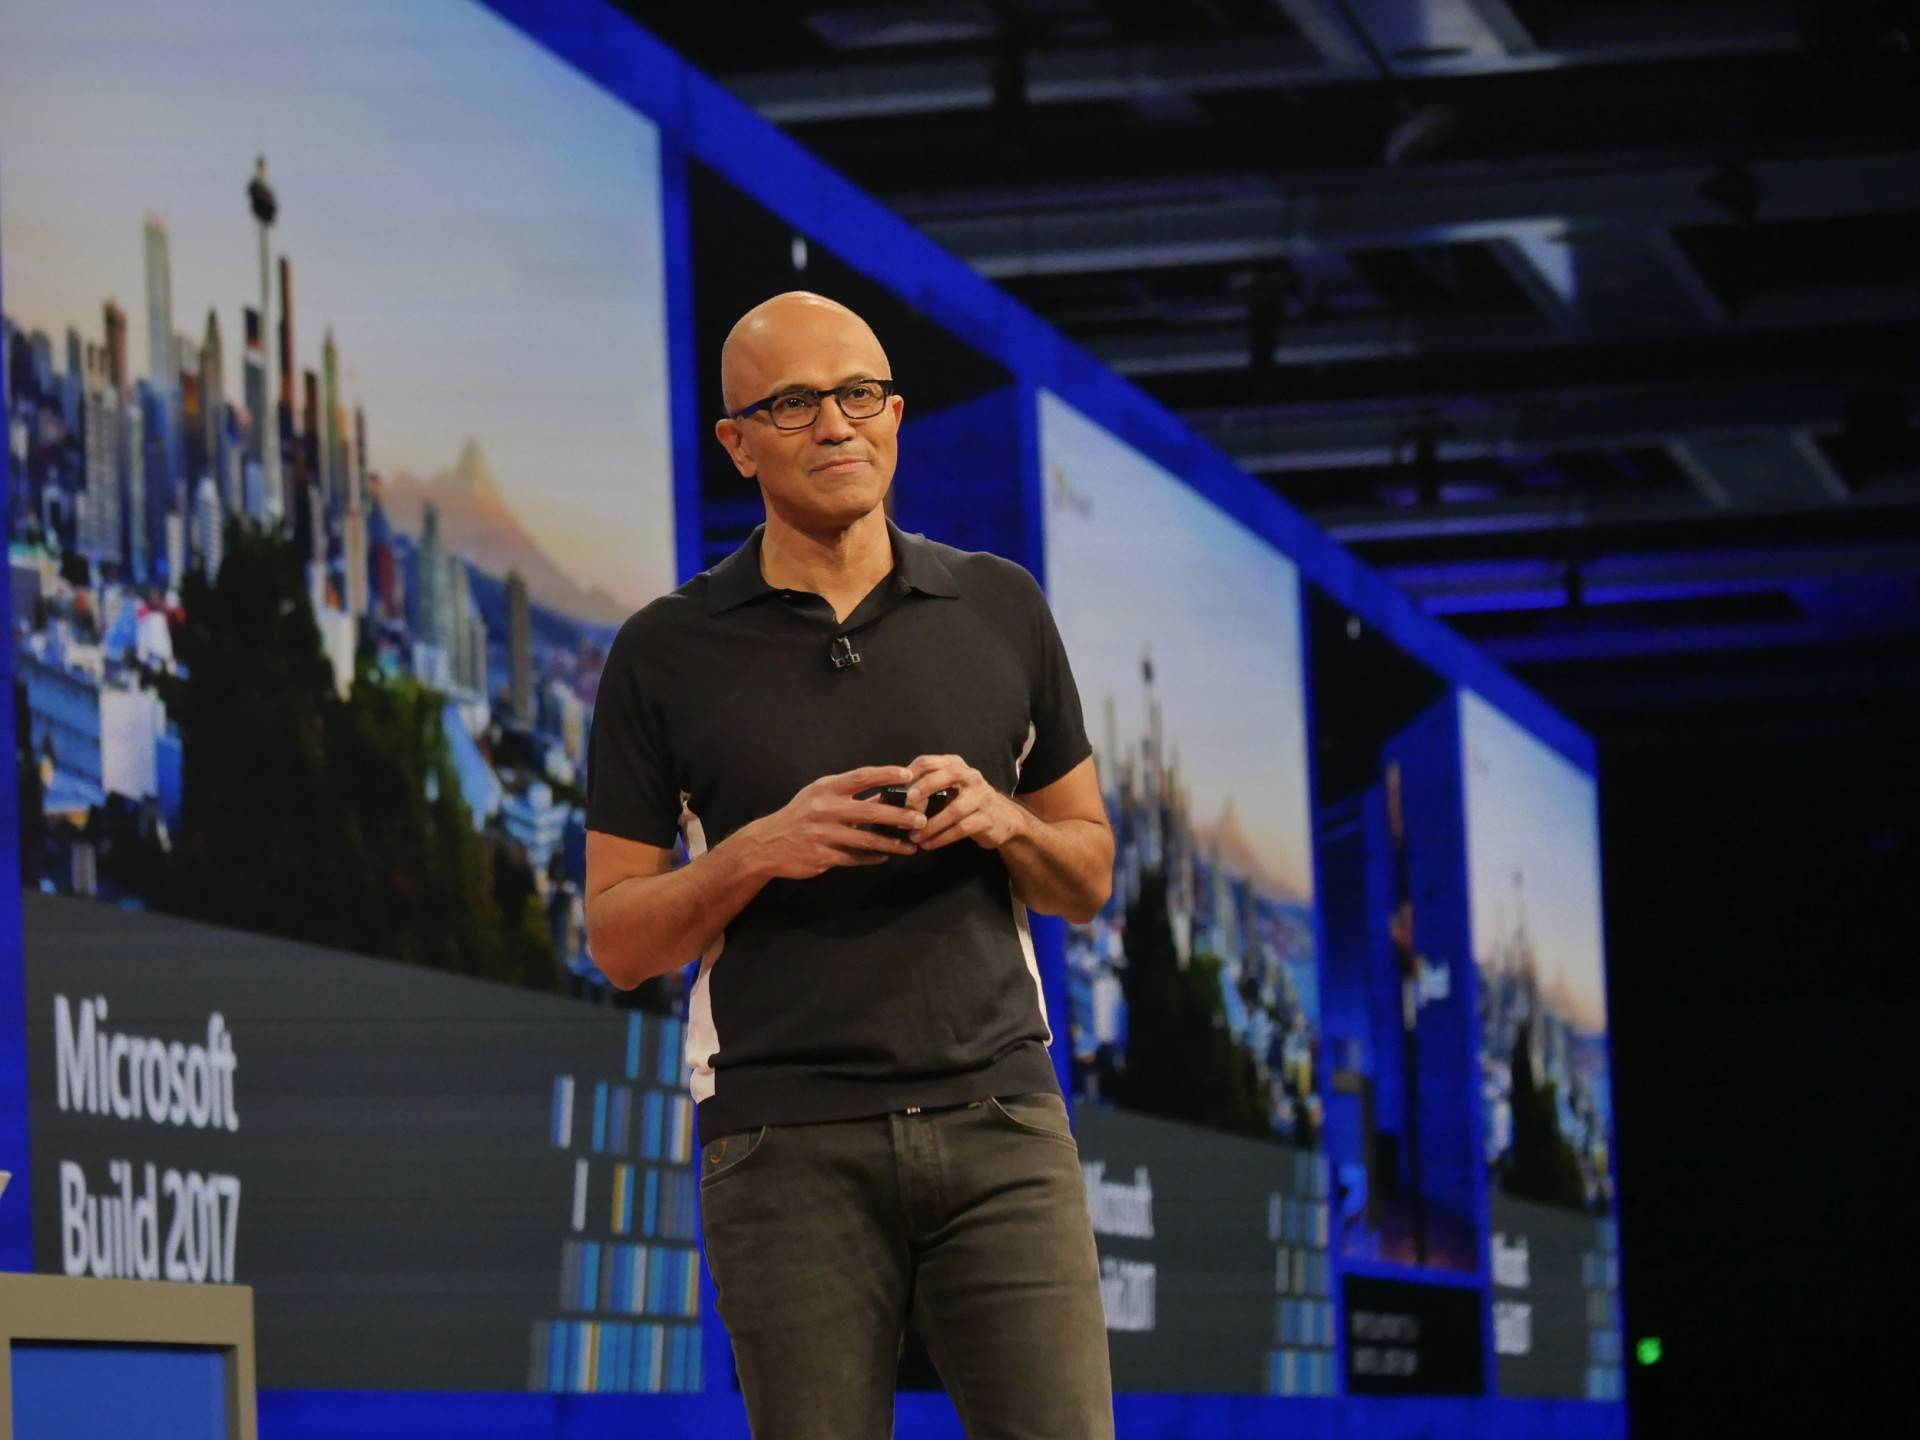 Microsoft Build 2017